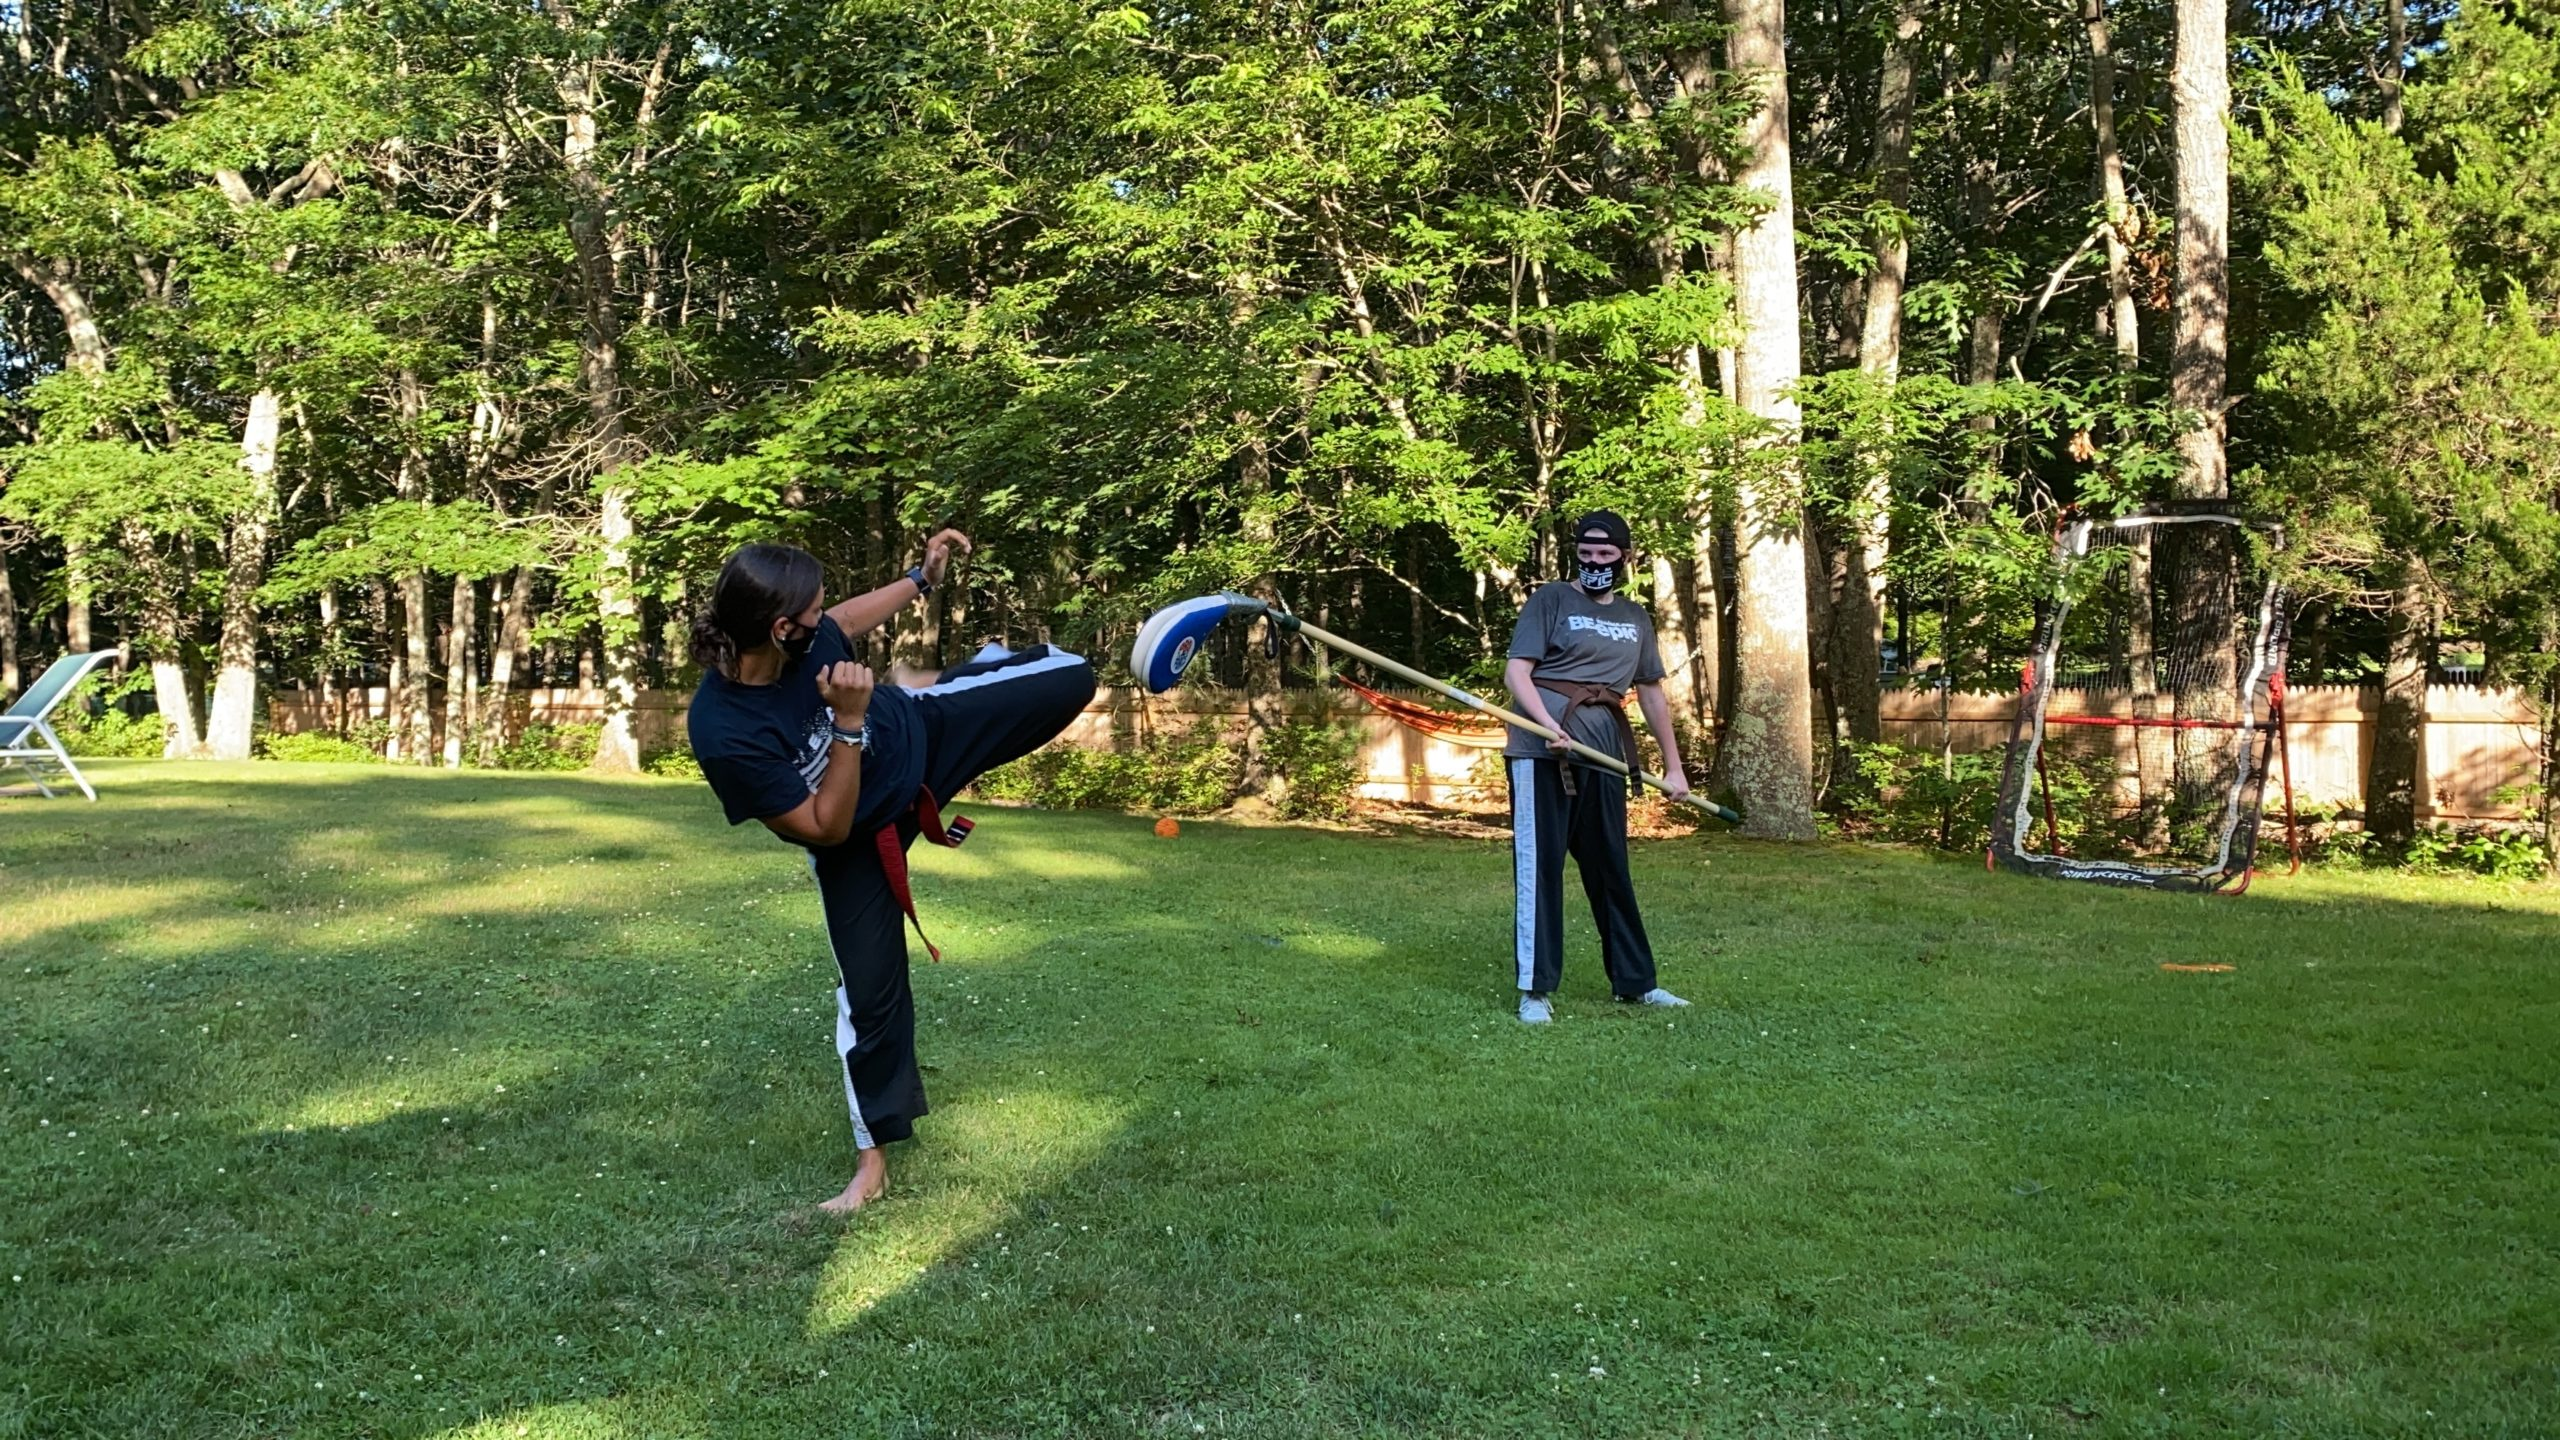 Emiley Nill, black belt at Epic Martial Arts, teaches an outdoor Martial Arts Class